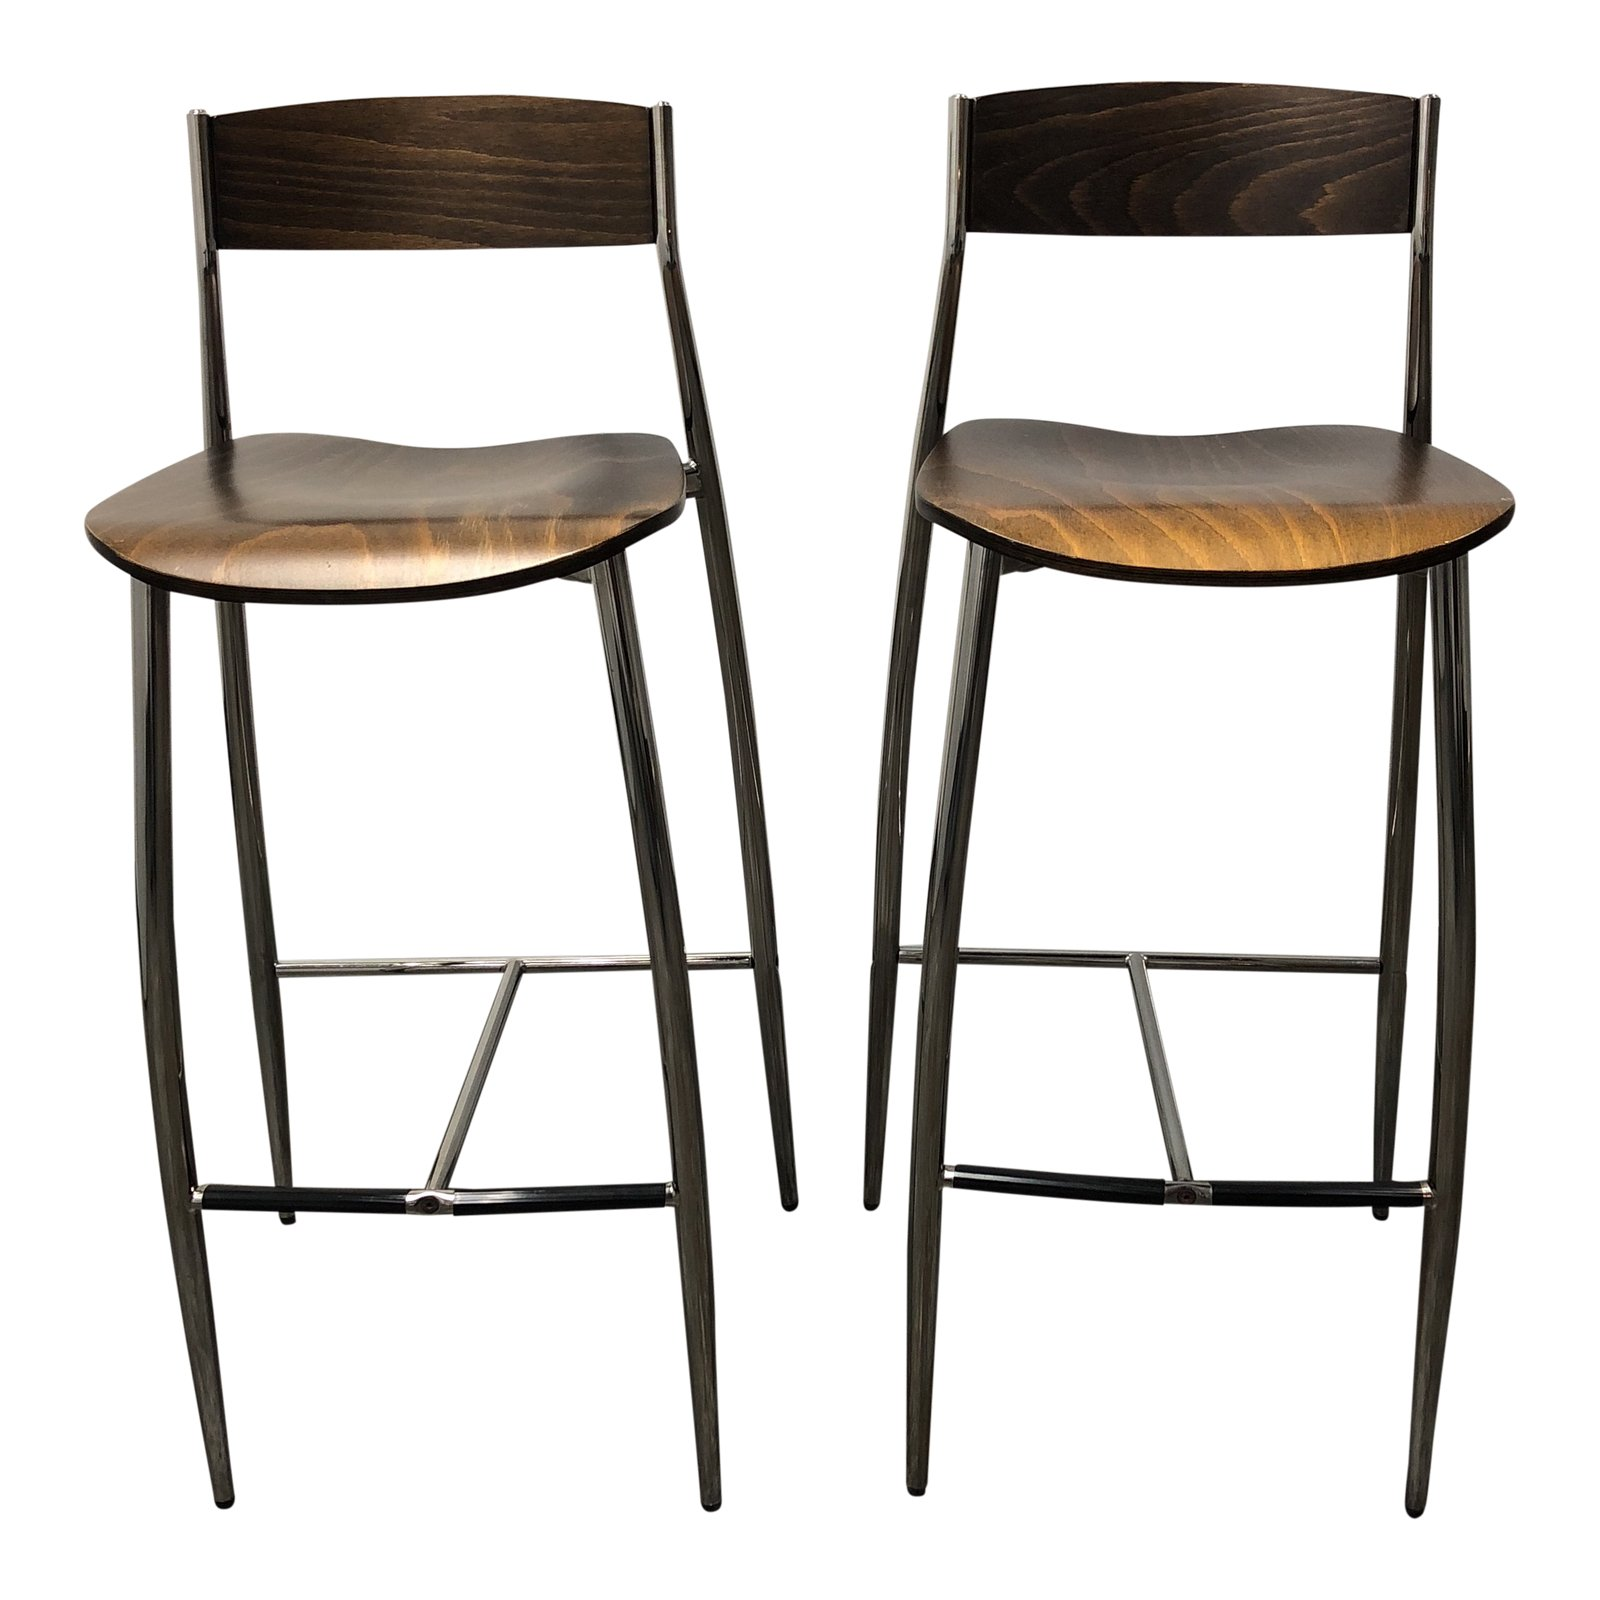 Fantastic Italian Altek Baba Wood Chrome Barstools A Pair Gmtry Best Dining Table And Chair Ideas Images Gmtryco